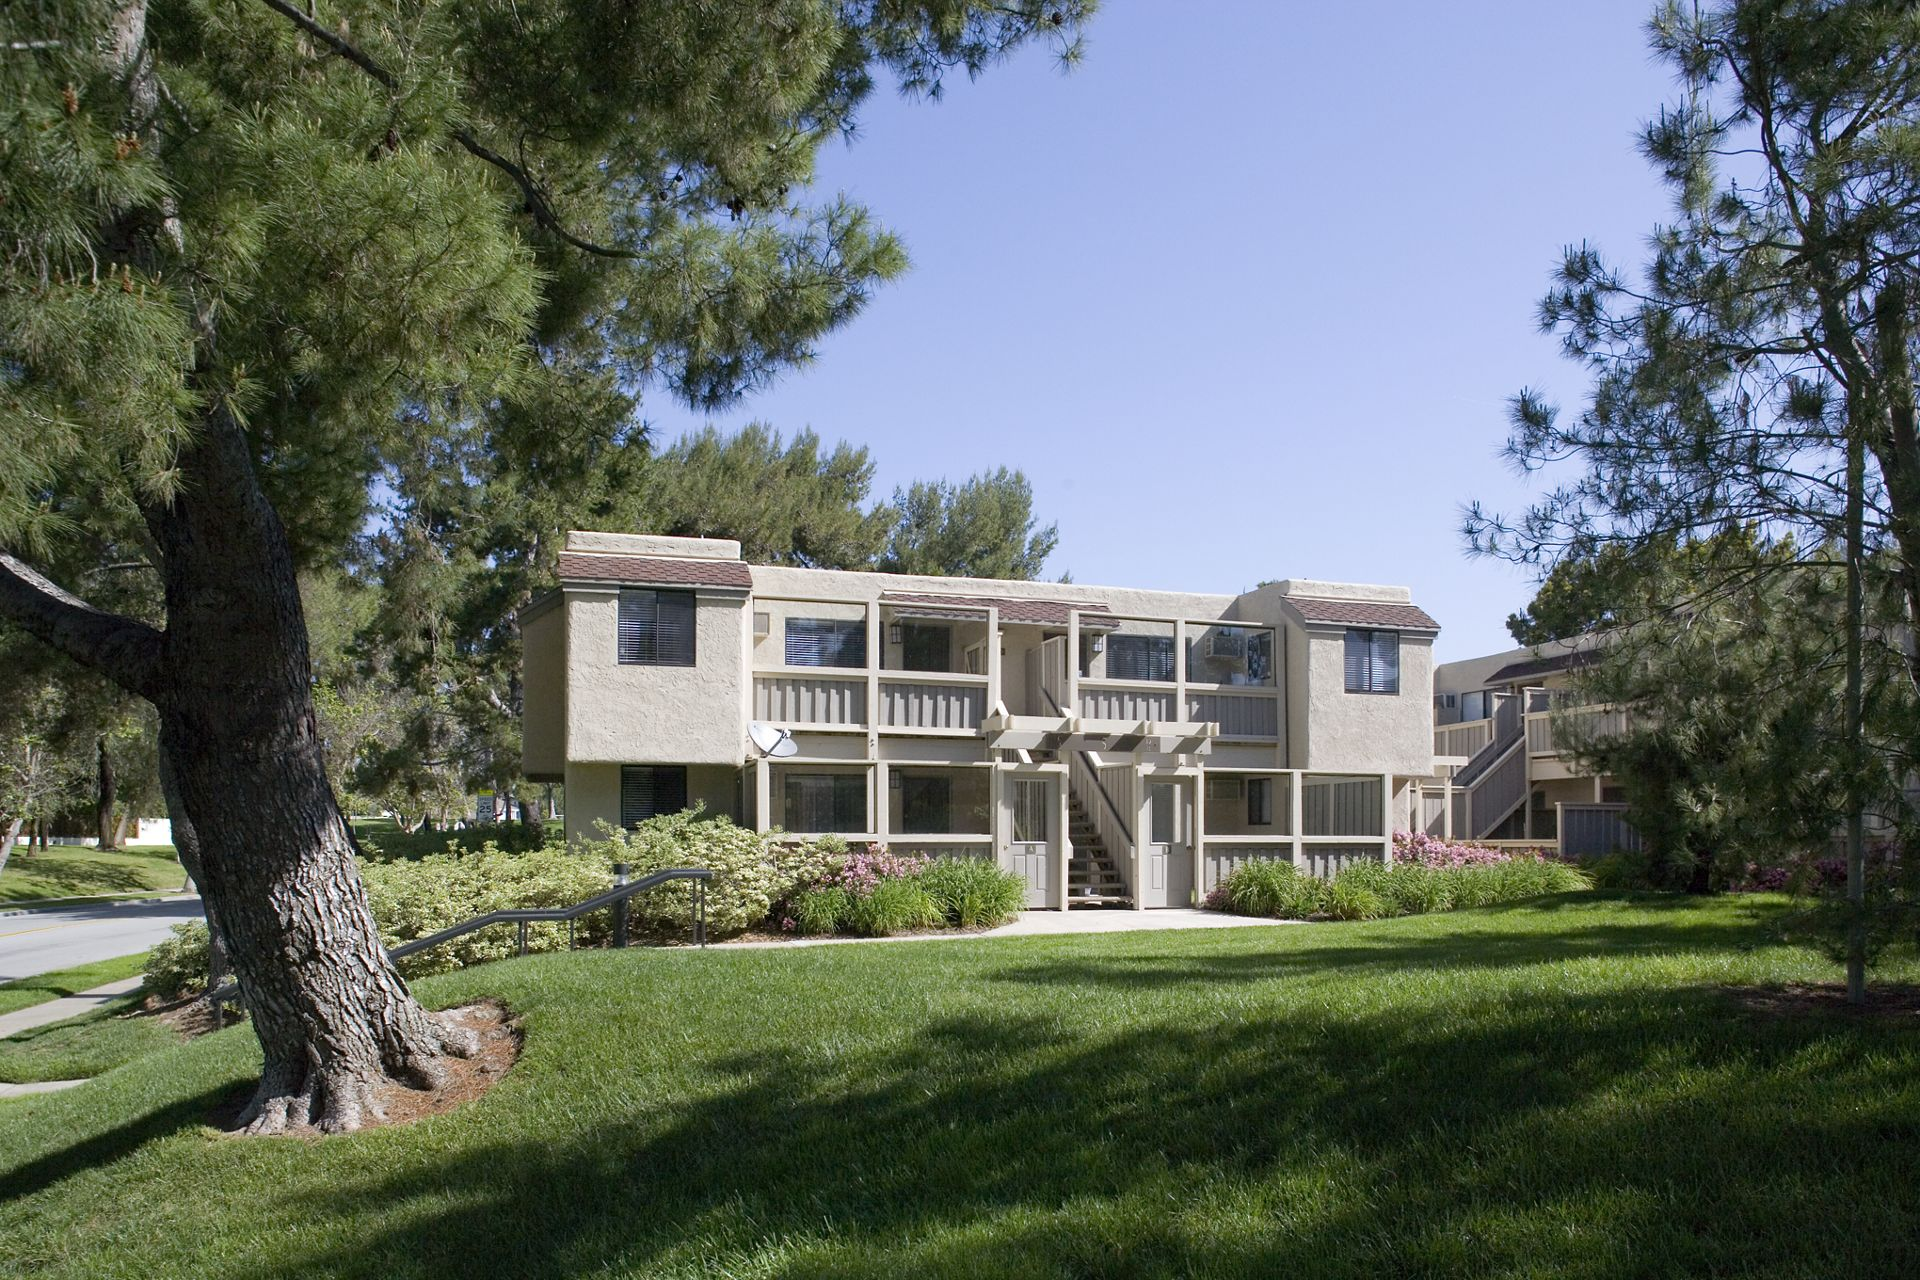 Exterior view of Parkwood Apartment Homes in Irvine, CA.